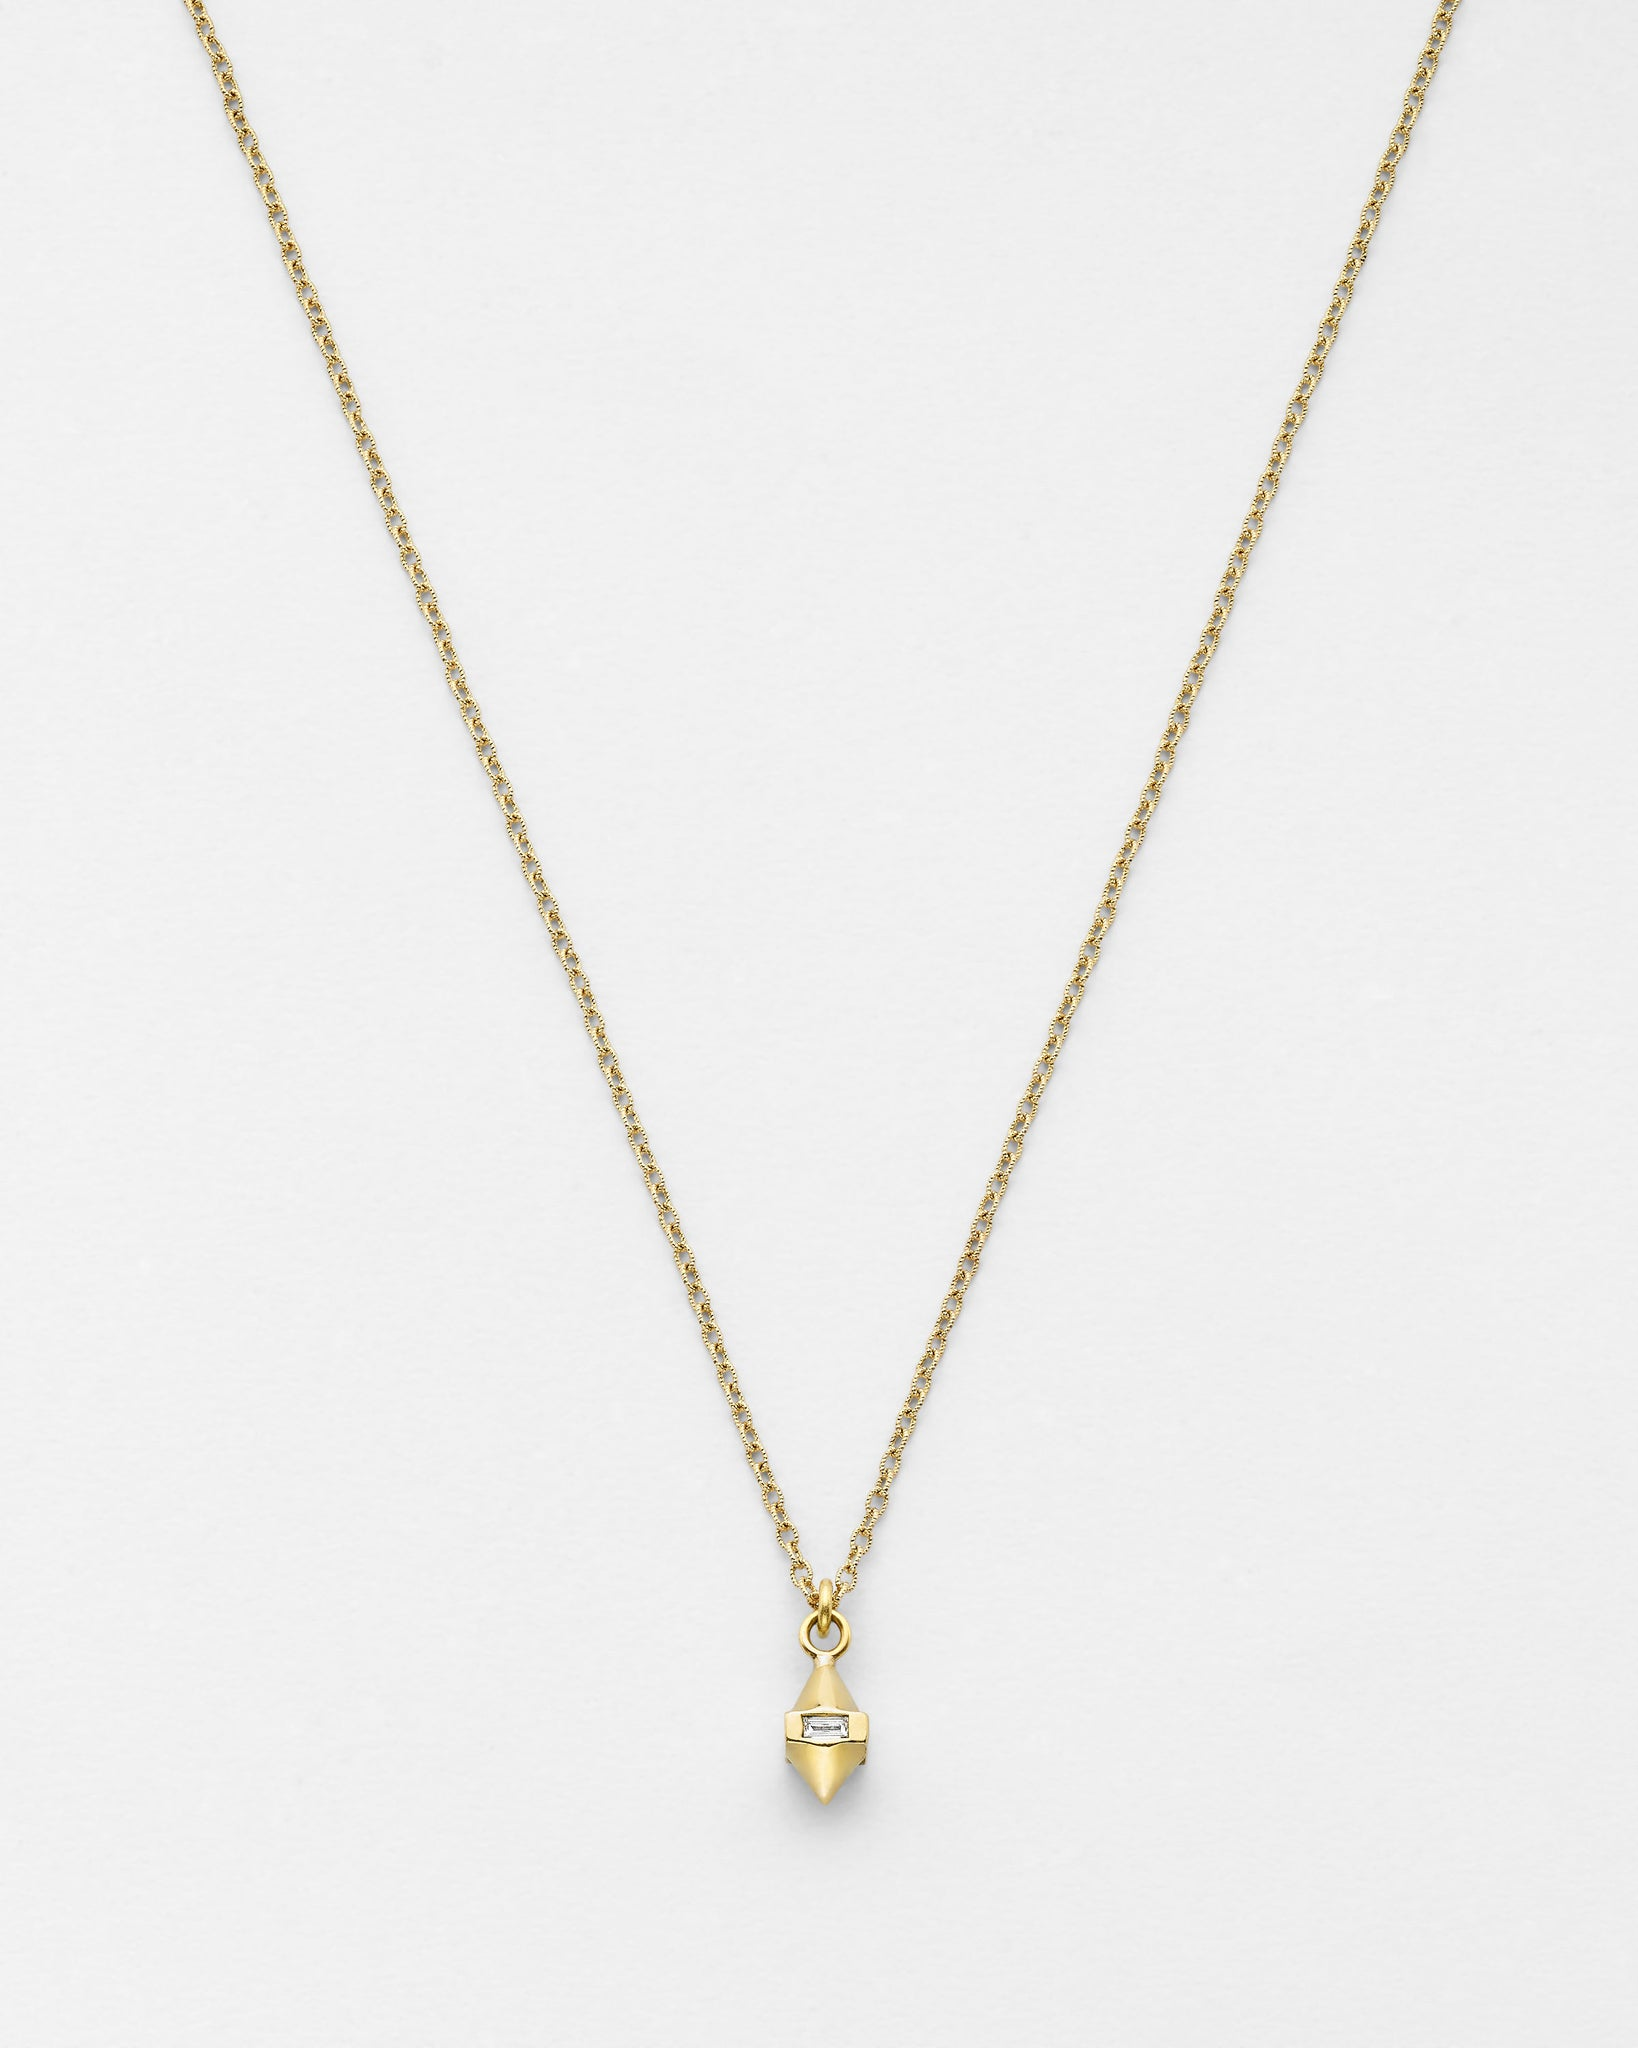 Chain Reaction Baguette Pendulum Necklace